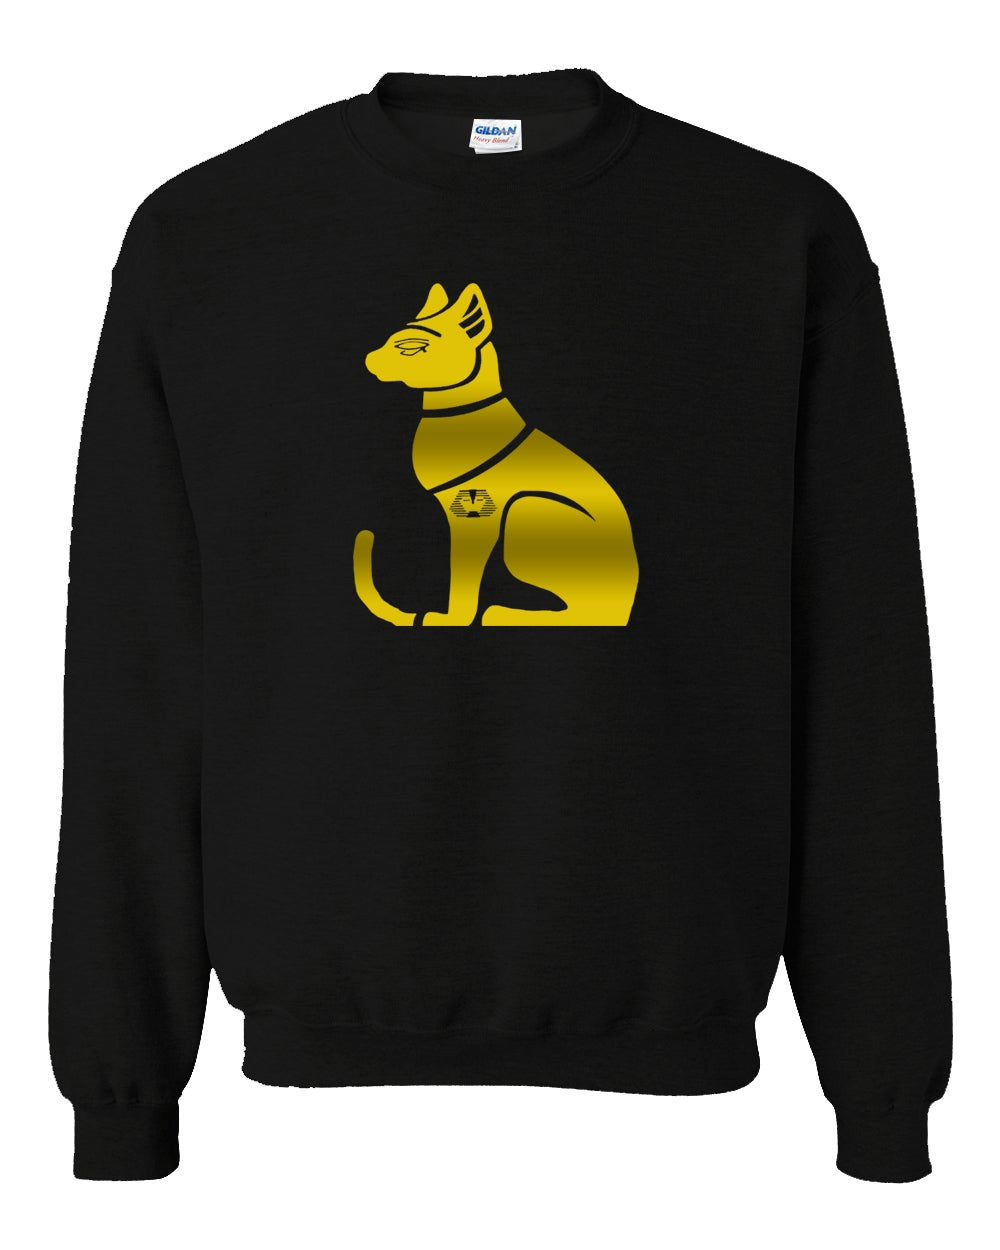 Image of MauCat Crewneck